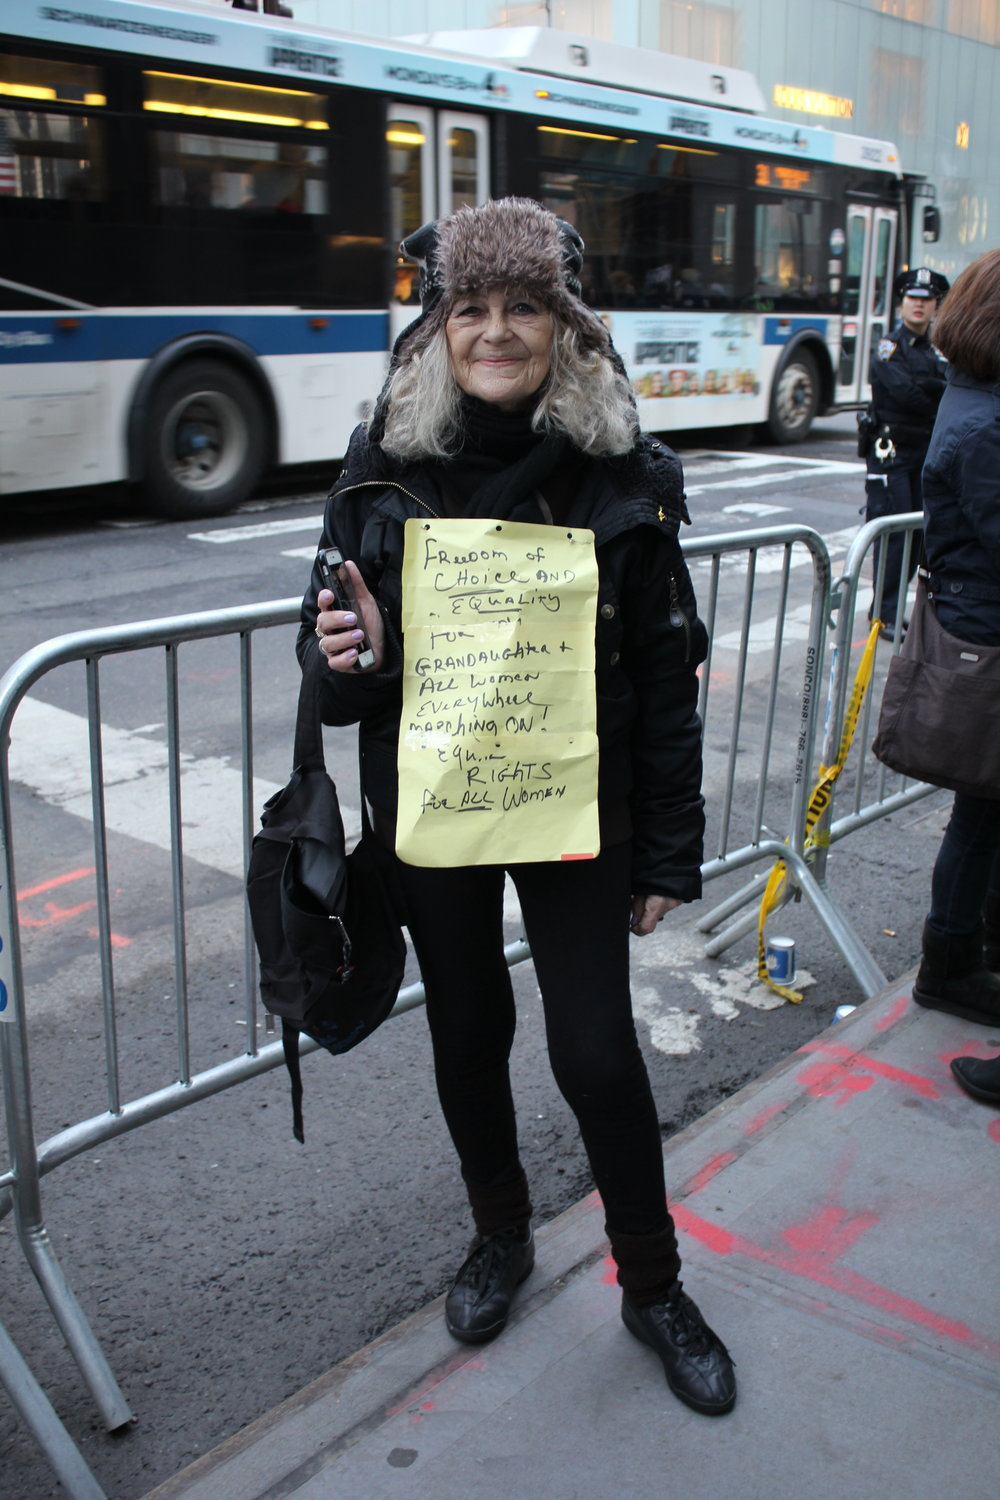 Anna with her self-made sign